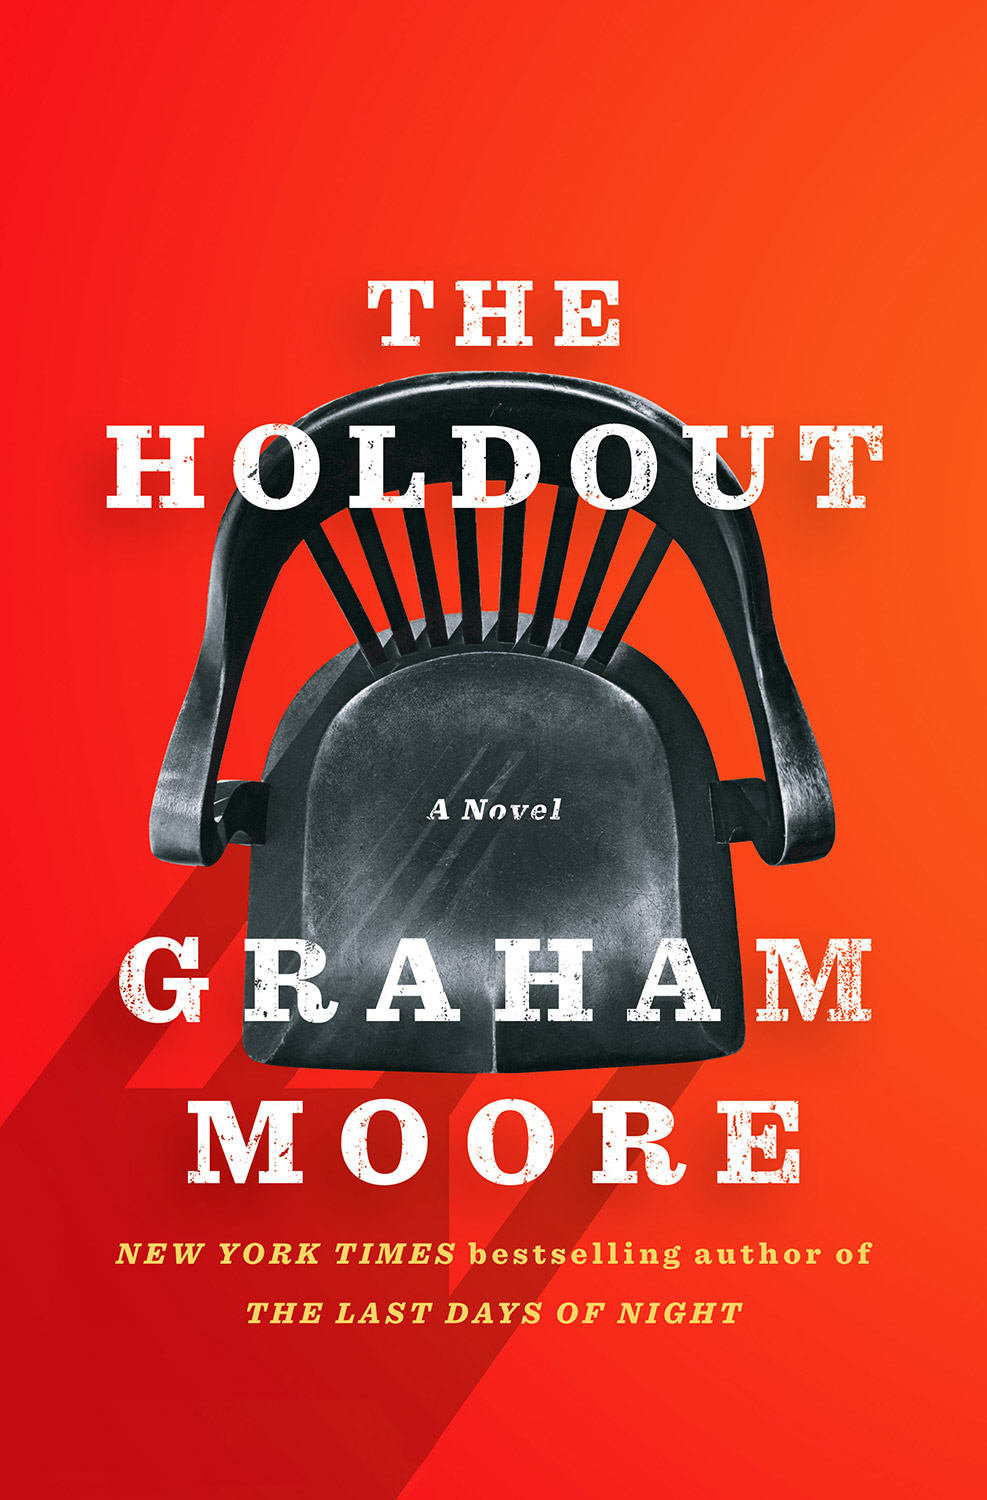 The Holdout, by Graham Moore